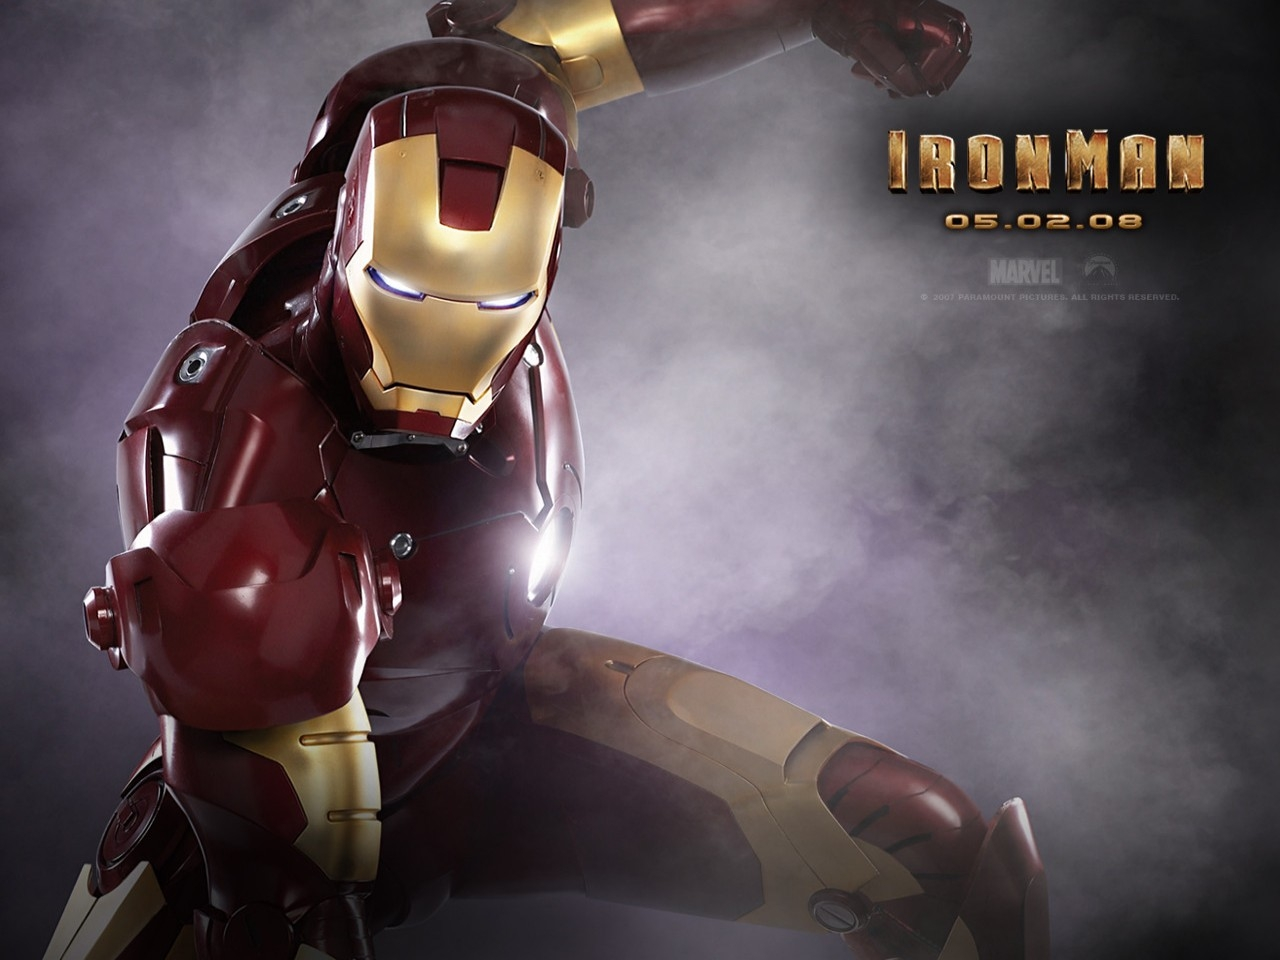 Wallpaper del film Iron Man (2008)